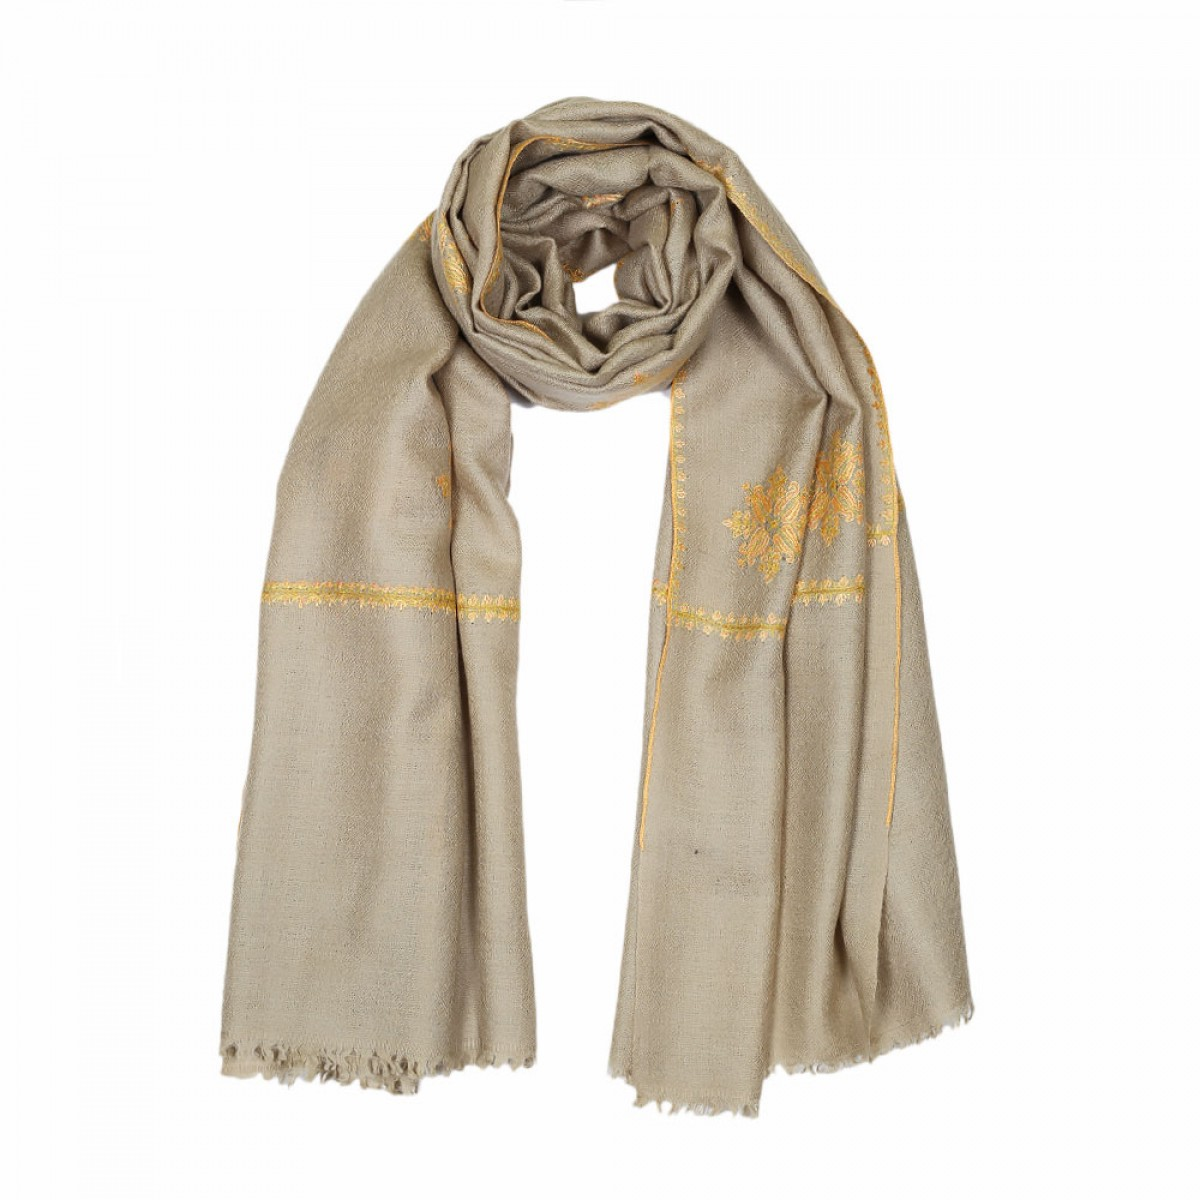 Embroidered Pashmina Stole - Oat Gold